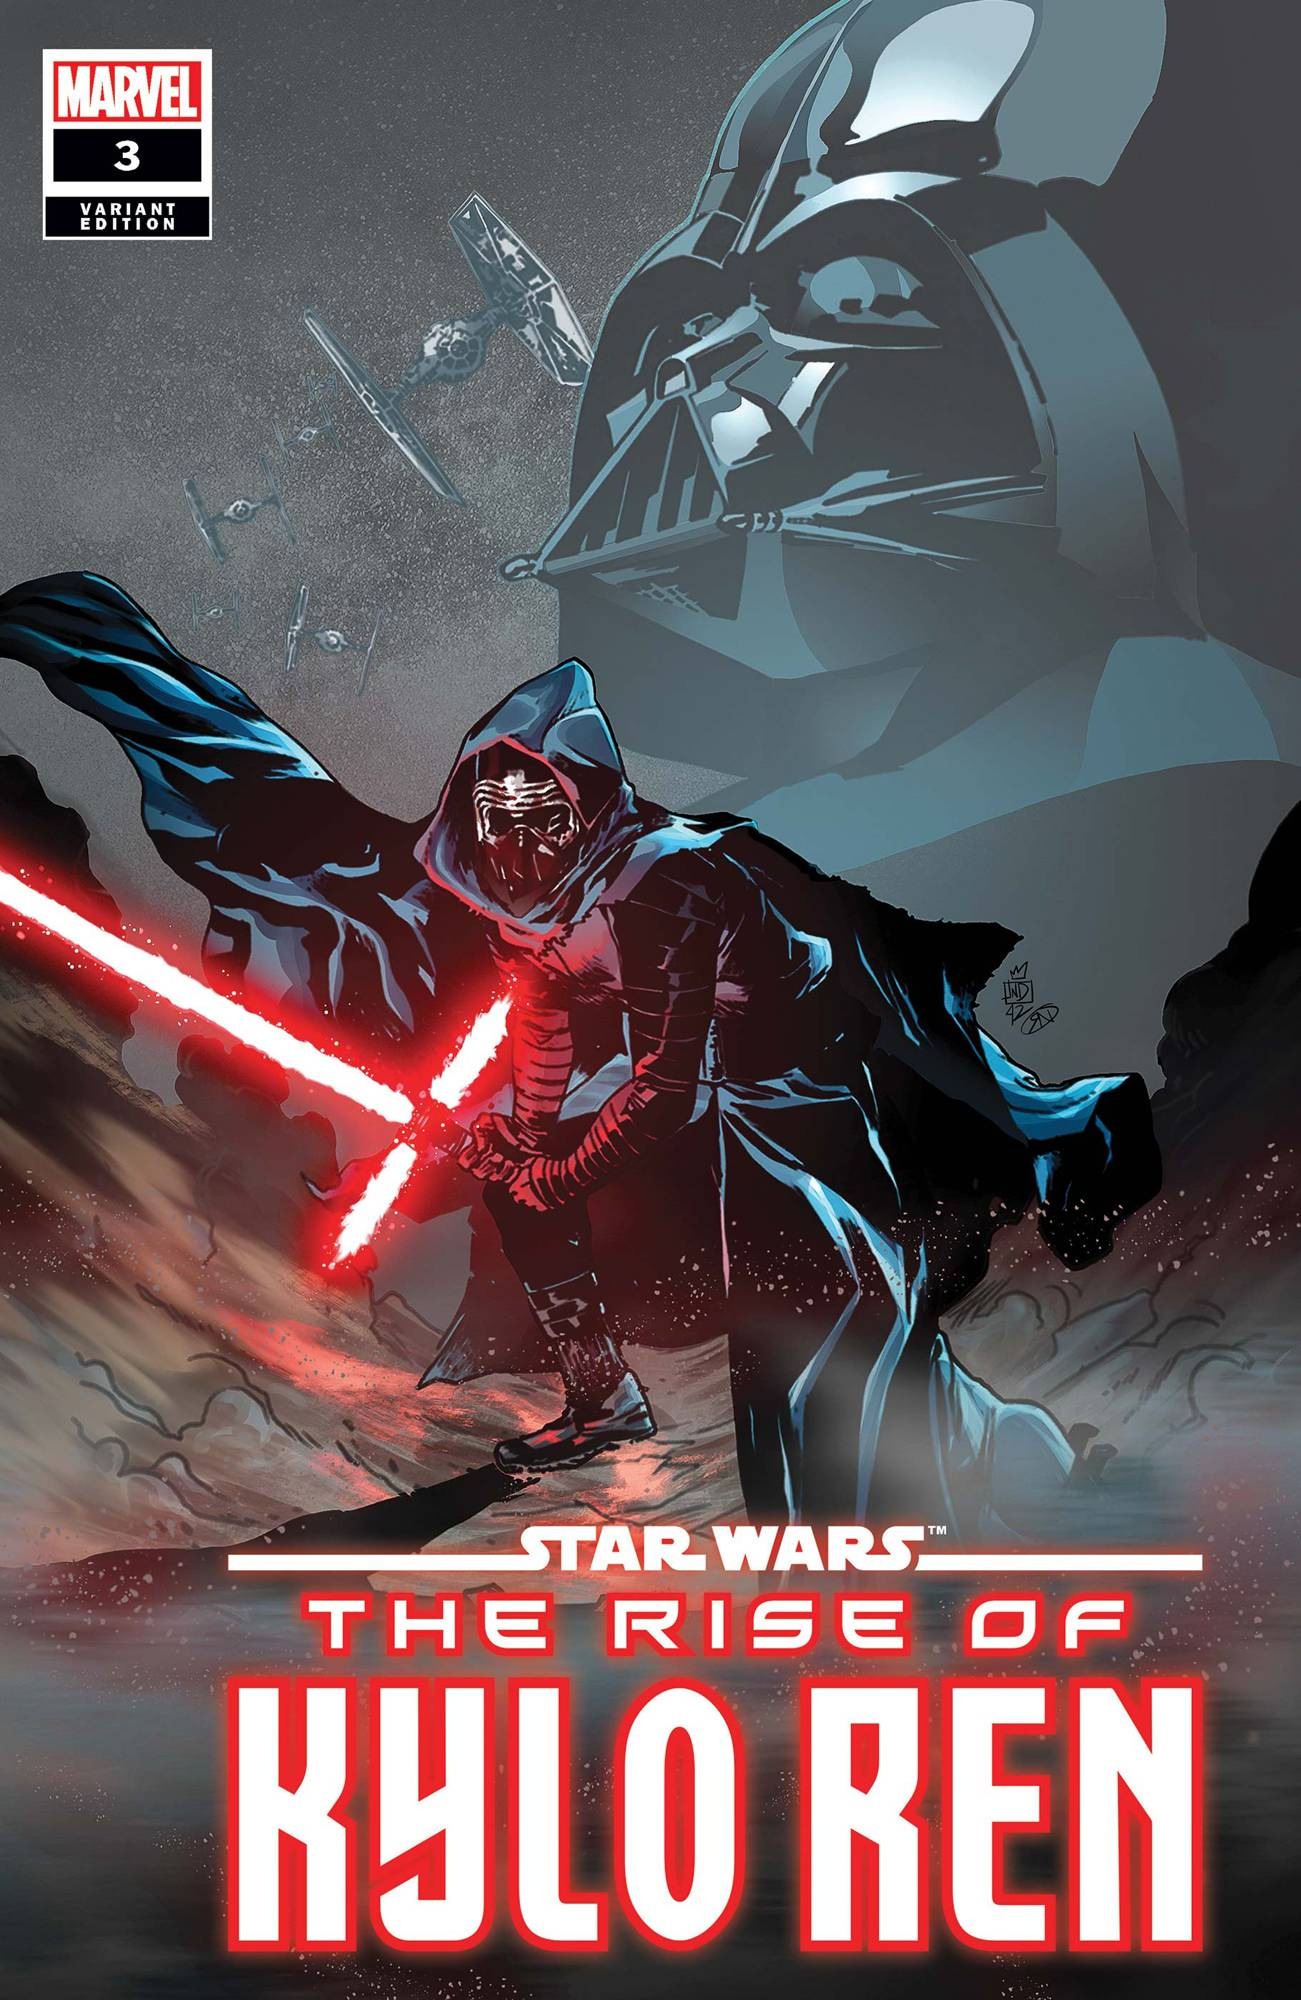 STAR WARS RISE KYLO REN #3 (OF 4) LANDINI VAR